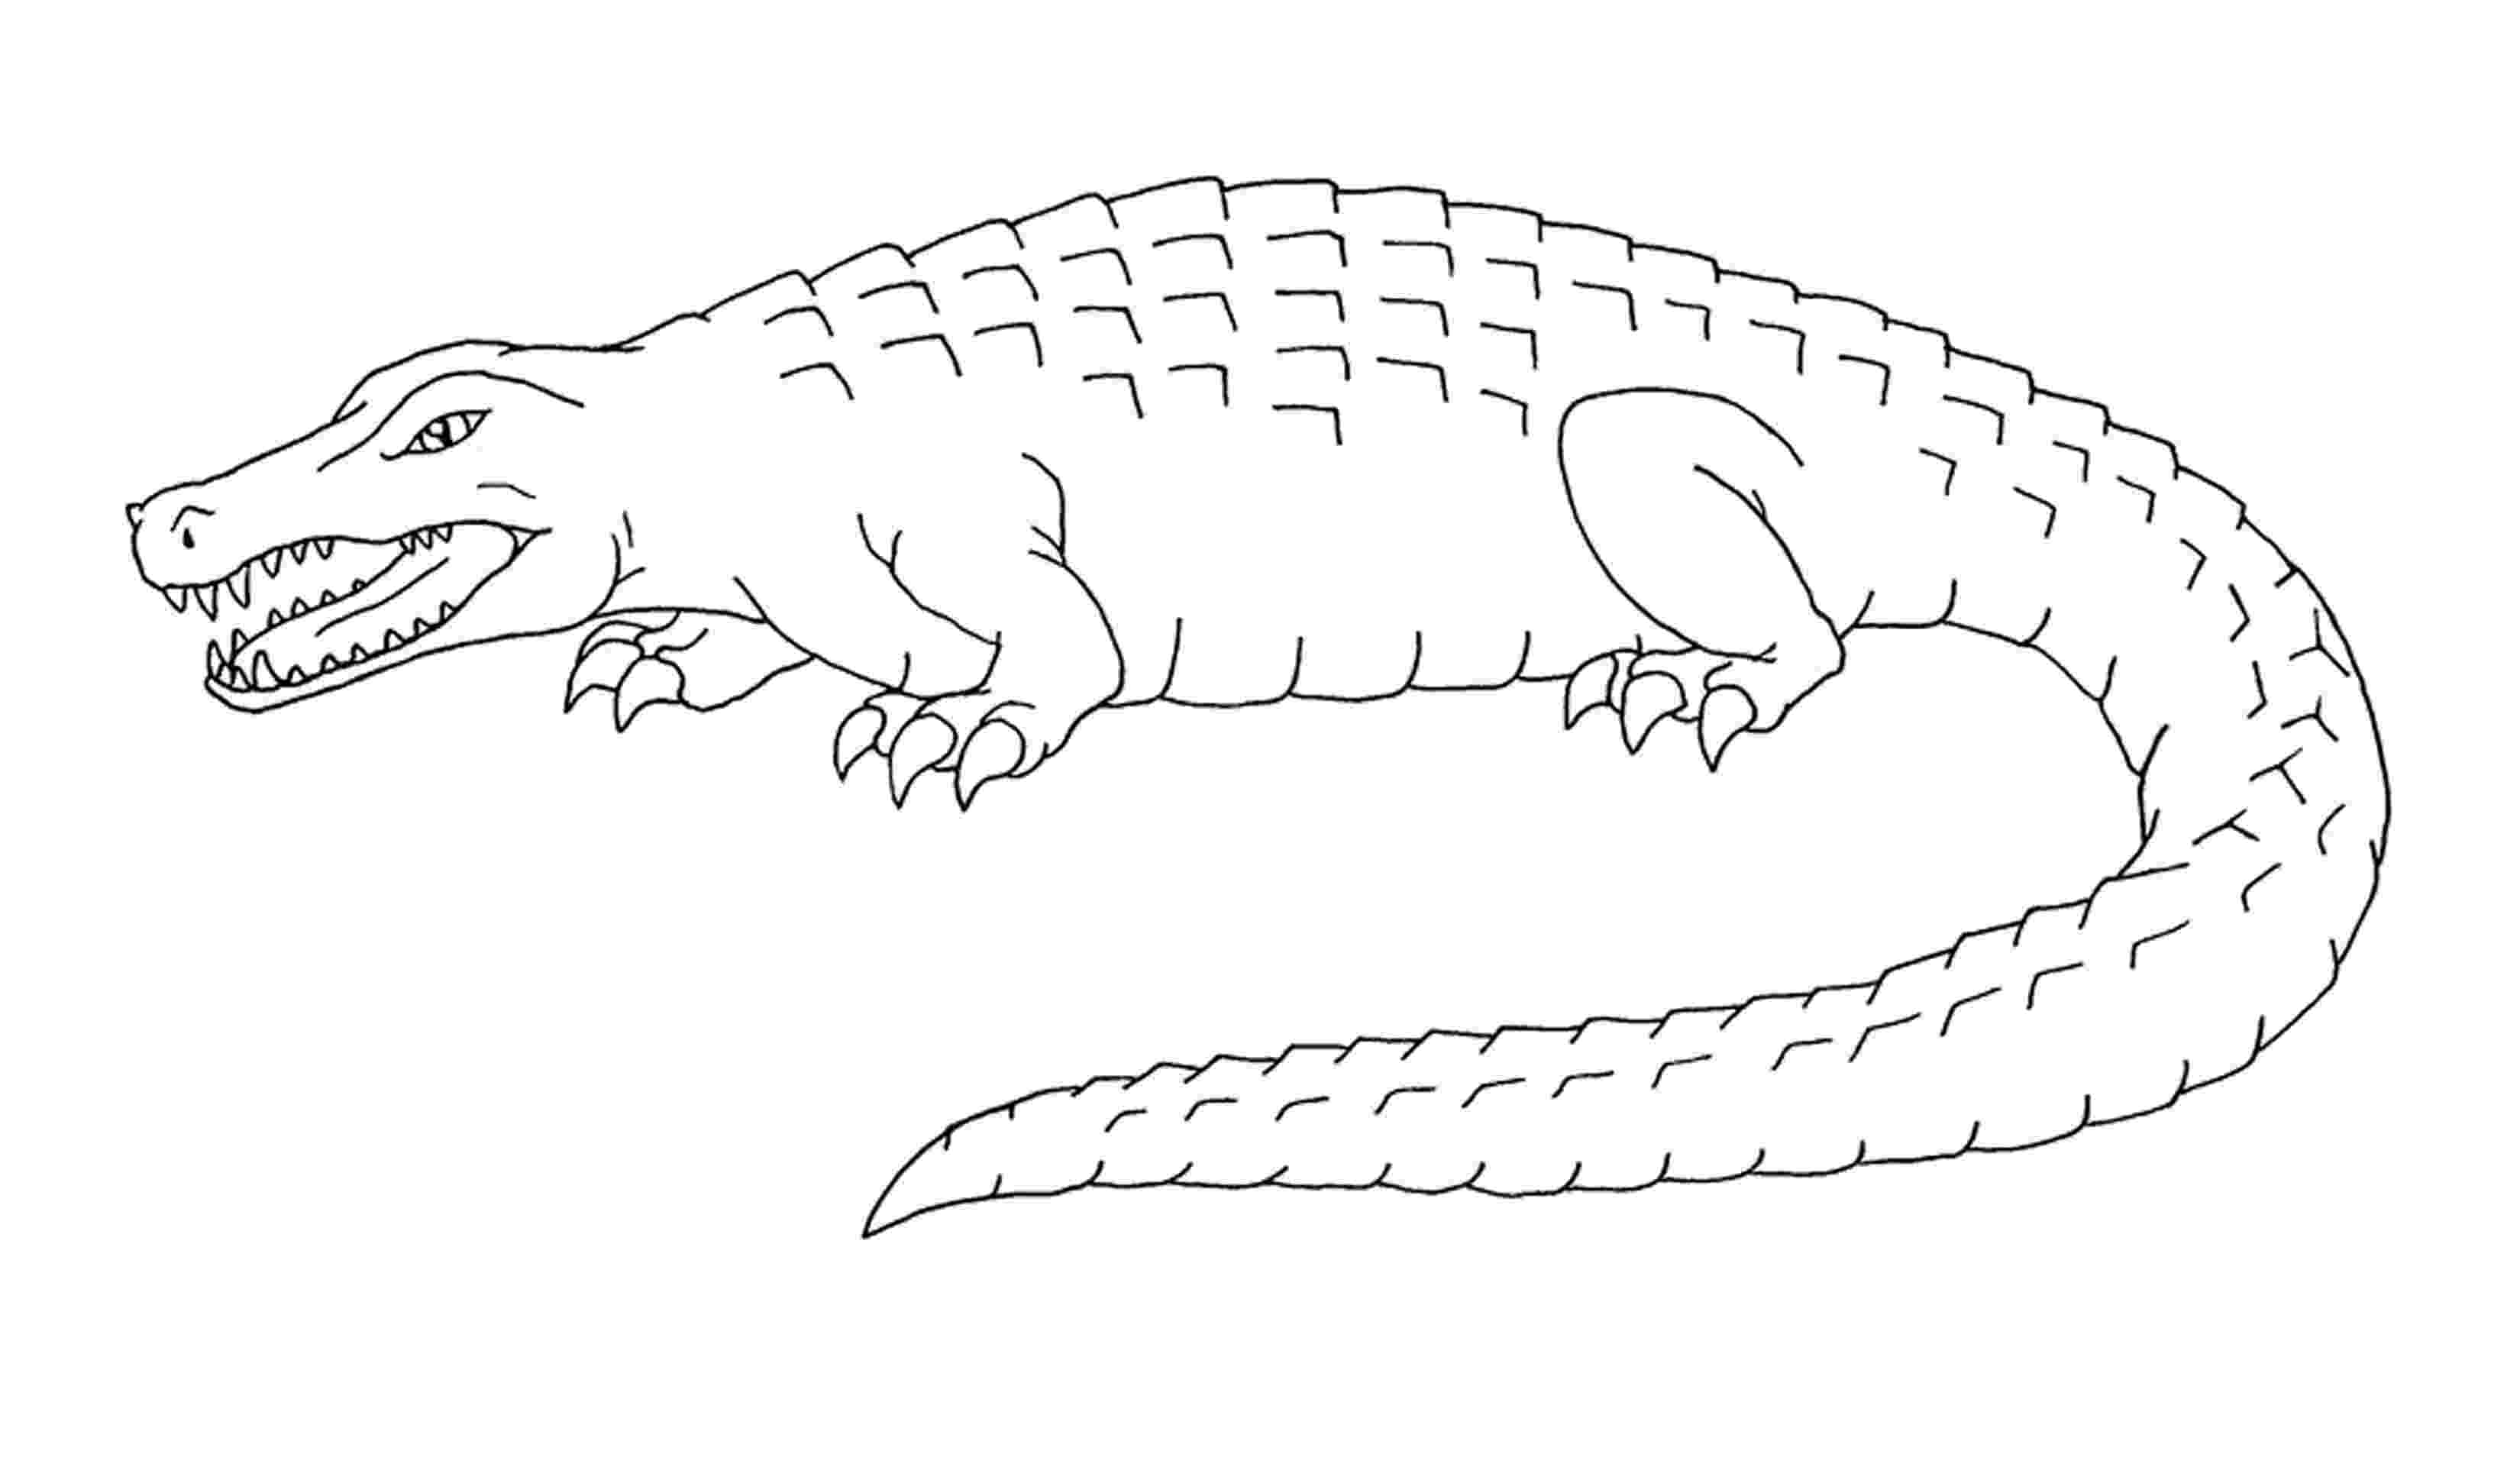 crocodile colouring crocodile outline free download best crocodile outline crocodile colouring